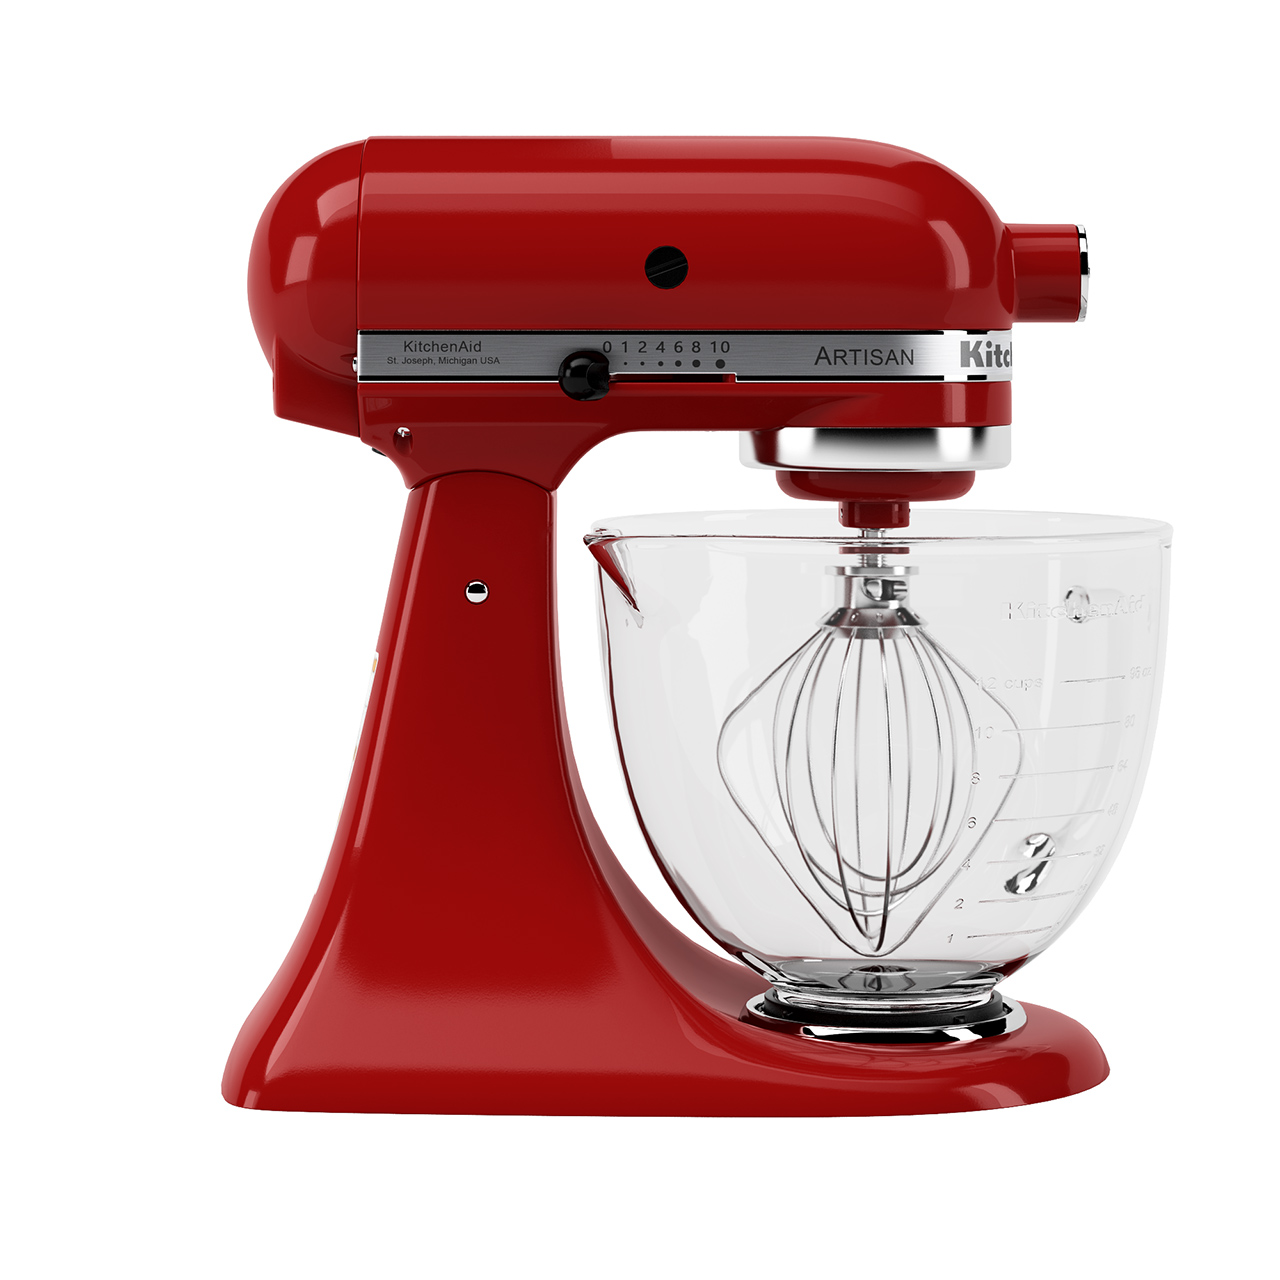 Artisan Stand Mixer 4.8 L by KitchenAid